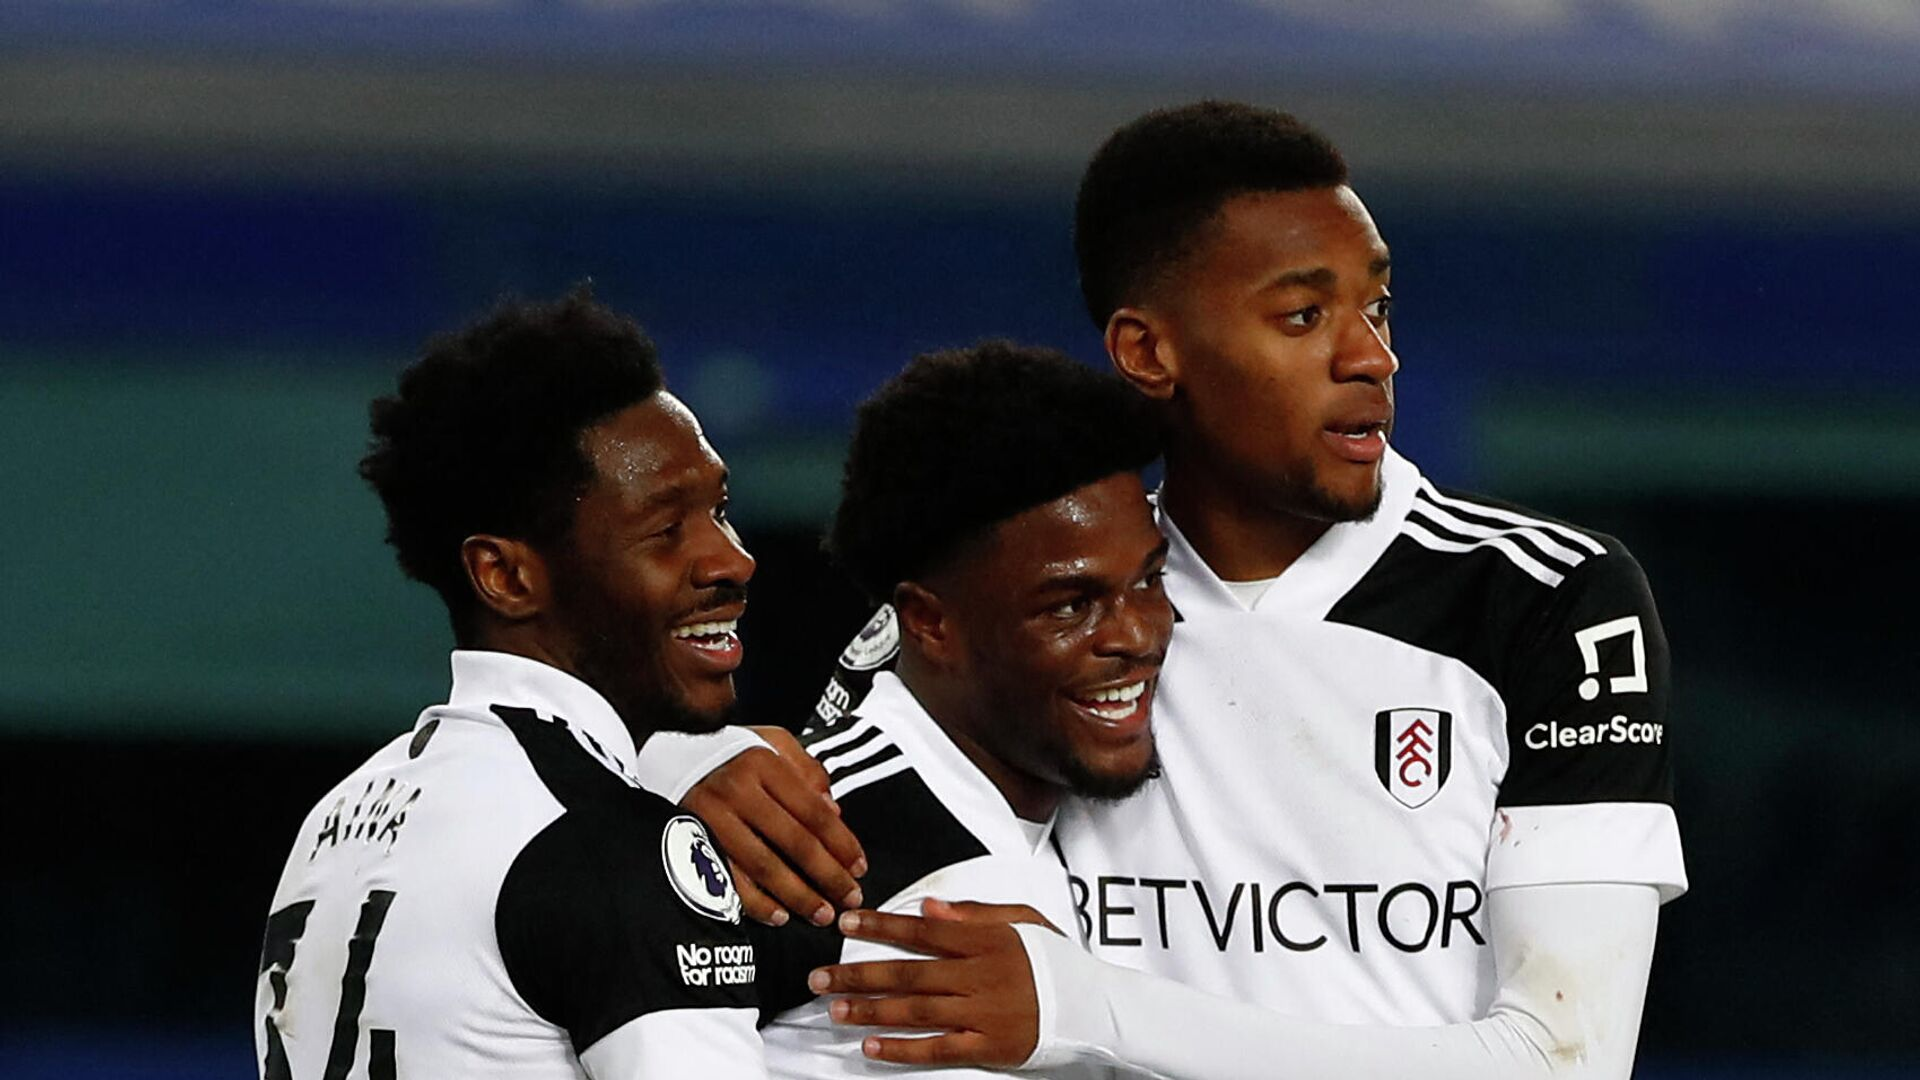 Fulham's Nigerian defender Ola Aina (L) and Fulham's English defender Tosin Adarabioyo (R) congratulate Fulham's Nigerian striker Josh Maja as he celebrates scoring his team's second goal during the English Premier League football match between Everton and Fulham at Goodison Park in Liverpool, north west England on February 14, 2021. (Photo by JASON CAIRNDUFF / POOL / AFP) / RESTRICTED TO EDITORIAL USE. No use with unauthorized audio, video, data, fixture lists, club/league logos or 'live' services. Online in-match use limited to 120 images. An additional 40 images may be used in extra time. No video emulation. Social media in-match use limited to 120 images. An additional 40 images may be used in extra time. No use in betting publications, games or single club/league/player publications. /  - РИА Новости, 1920, 15.02.2021